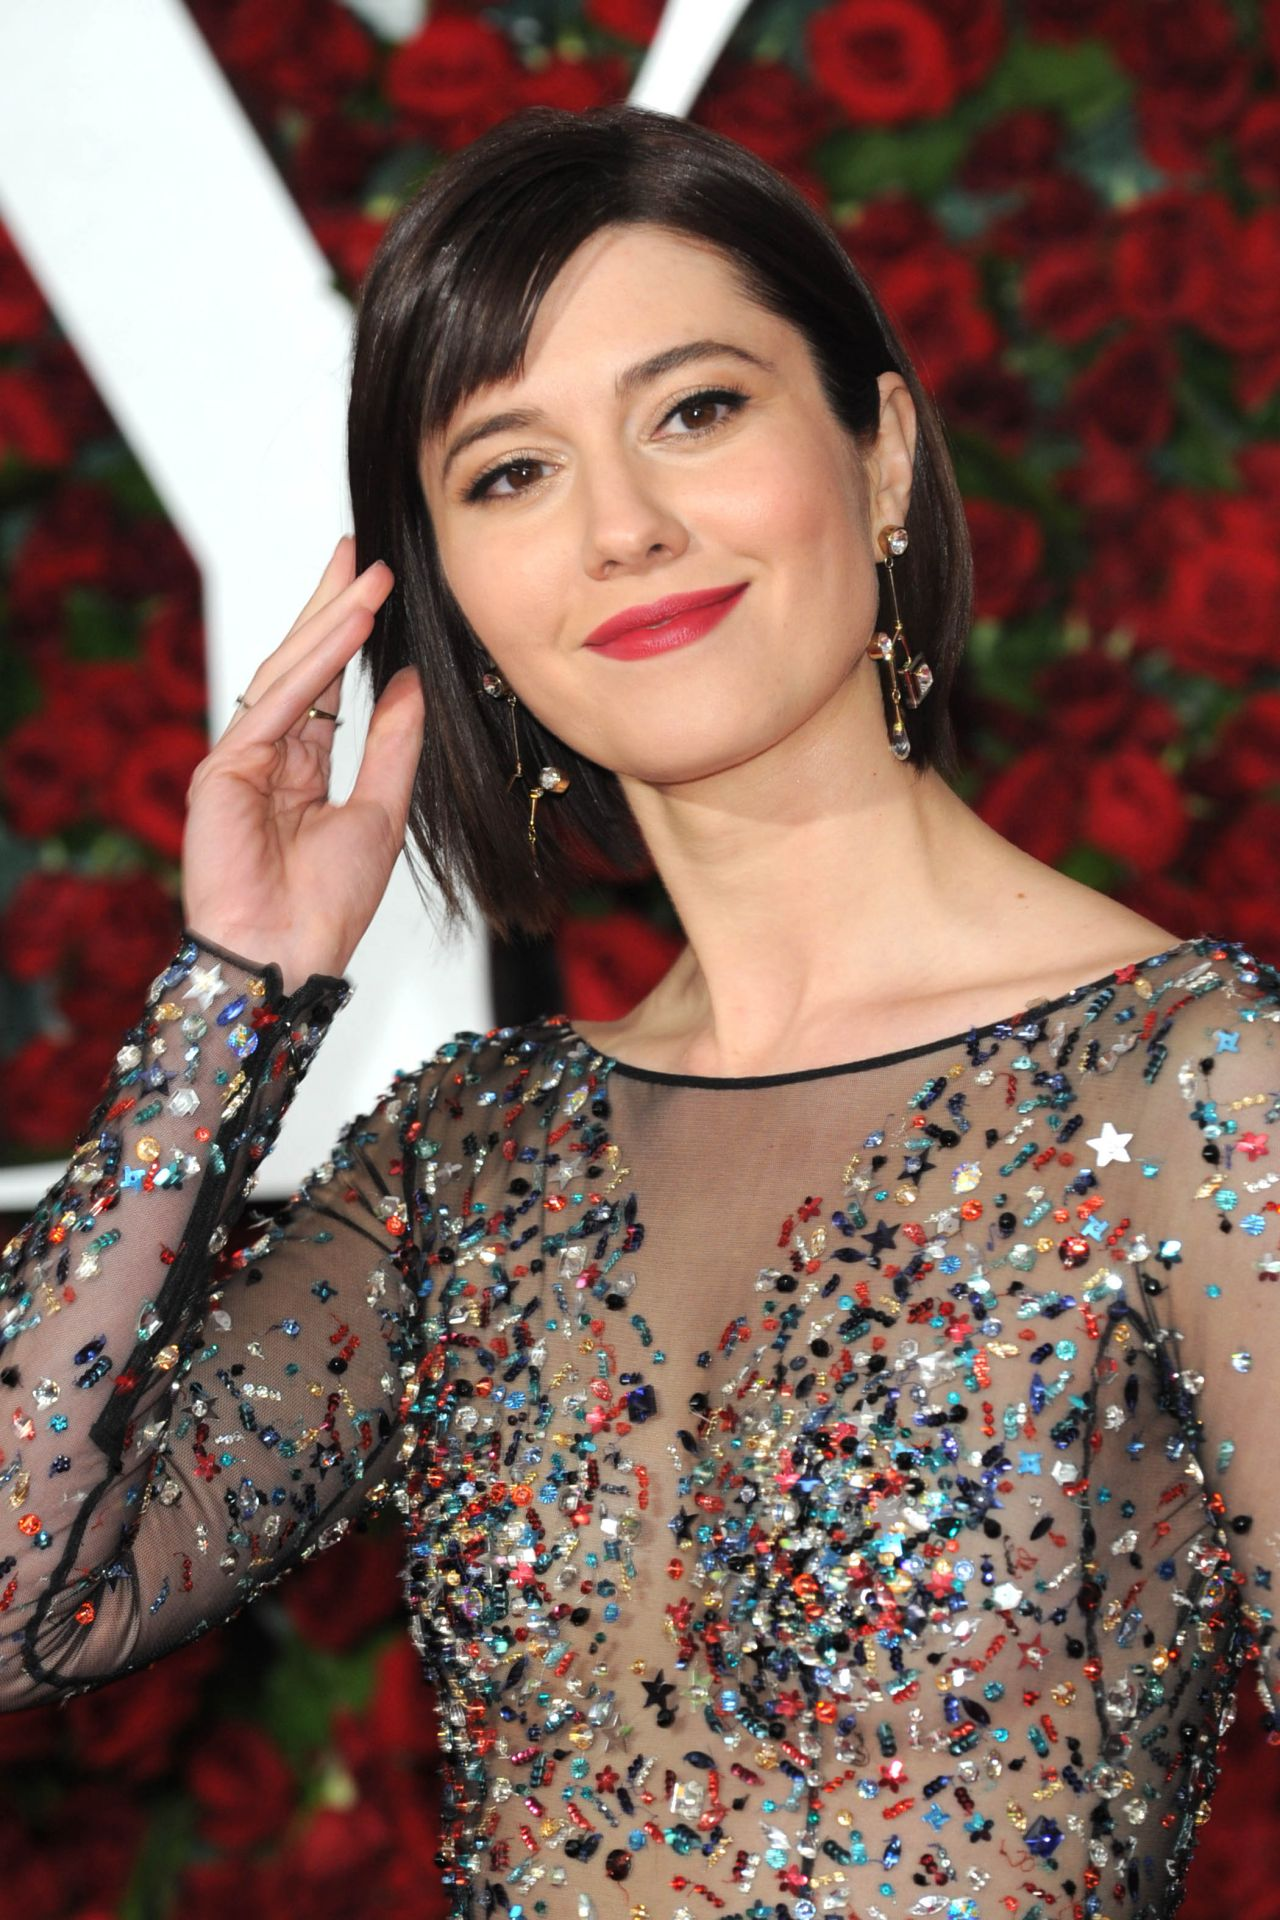 mary-elizabeth-winstead-2016-tony-awards-in-new-york-2.jpg (1280×1920)